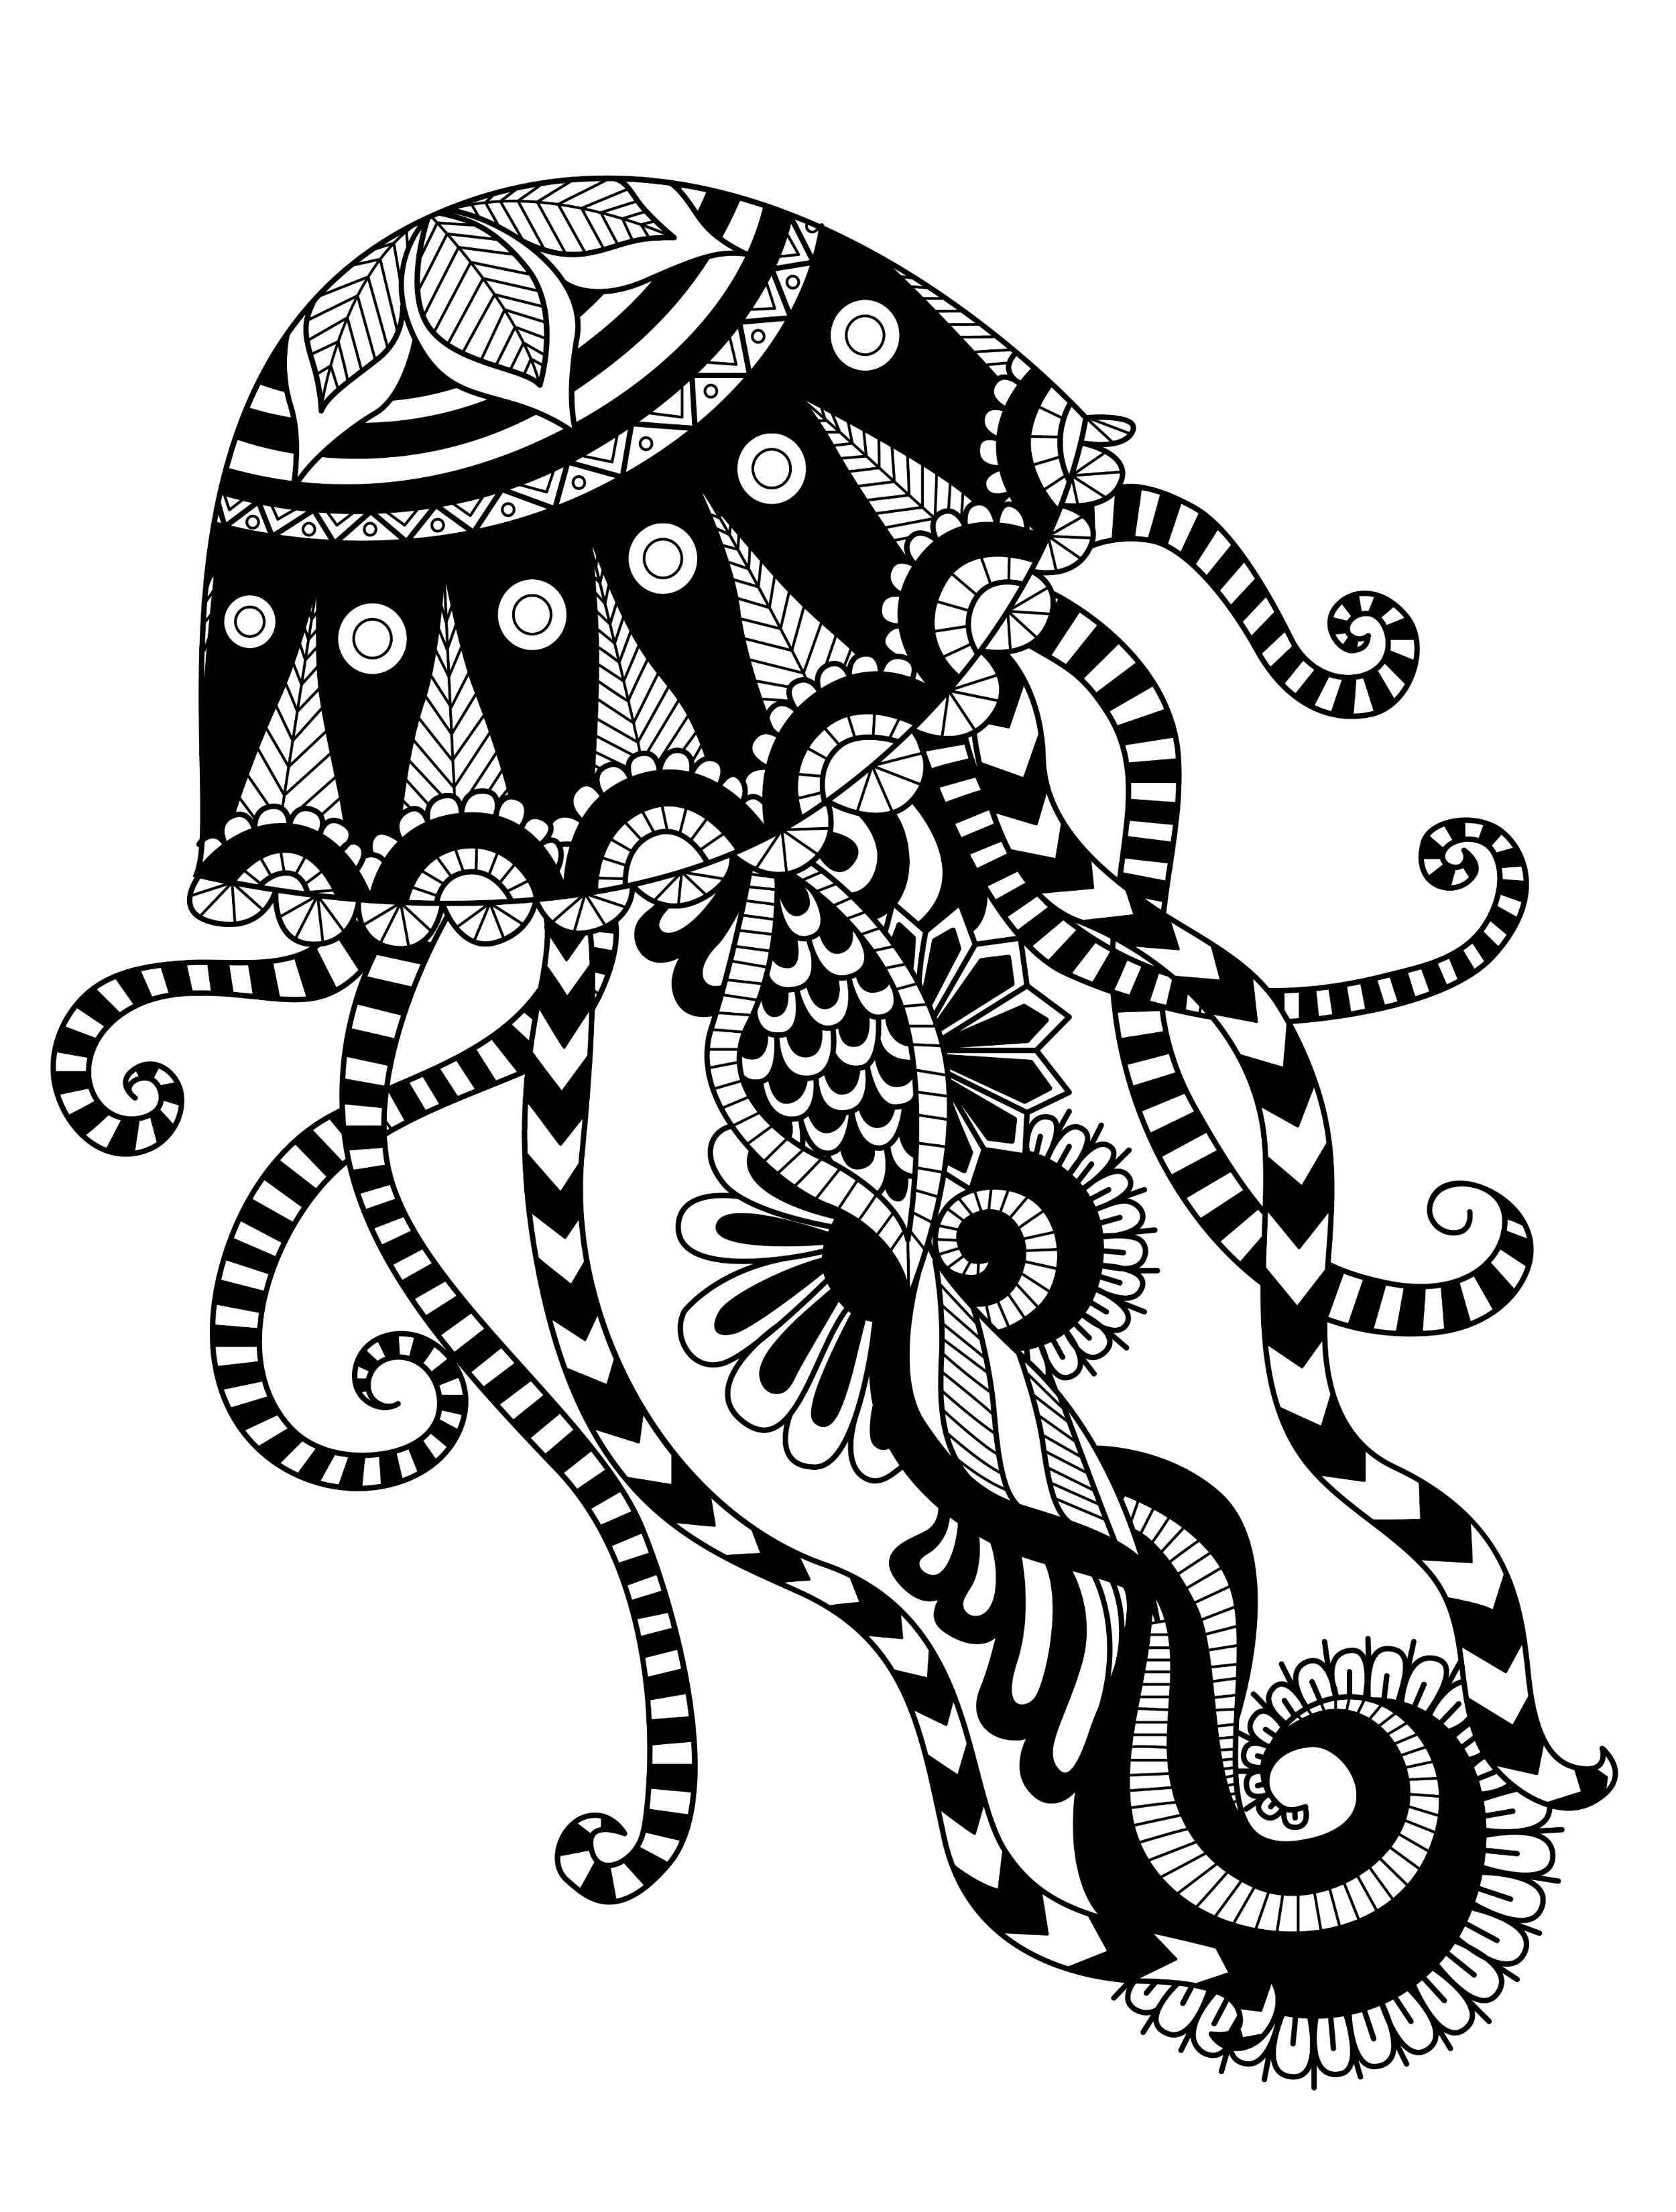 23 free printable insect animal adult coloring pages page 9 of rh pinterest com princess coloring - Jellyfish Coloring Page